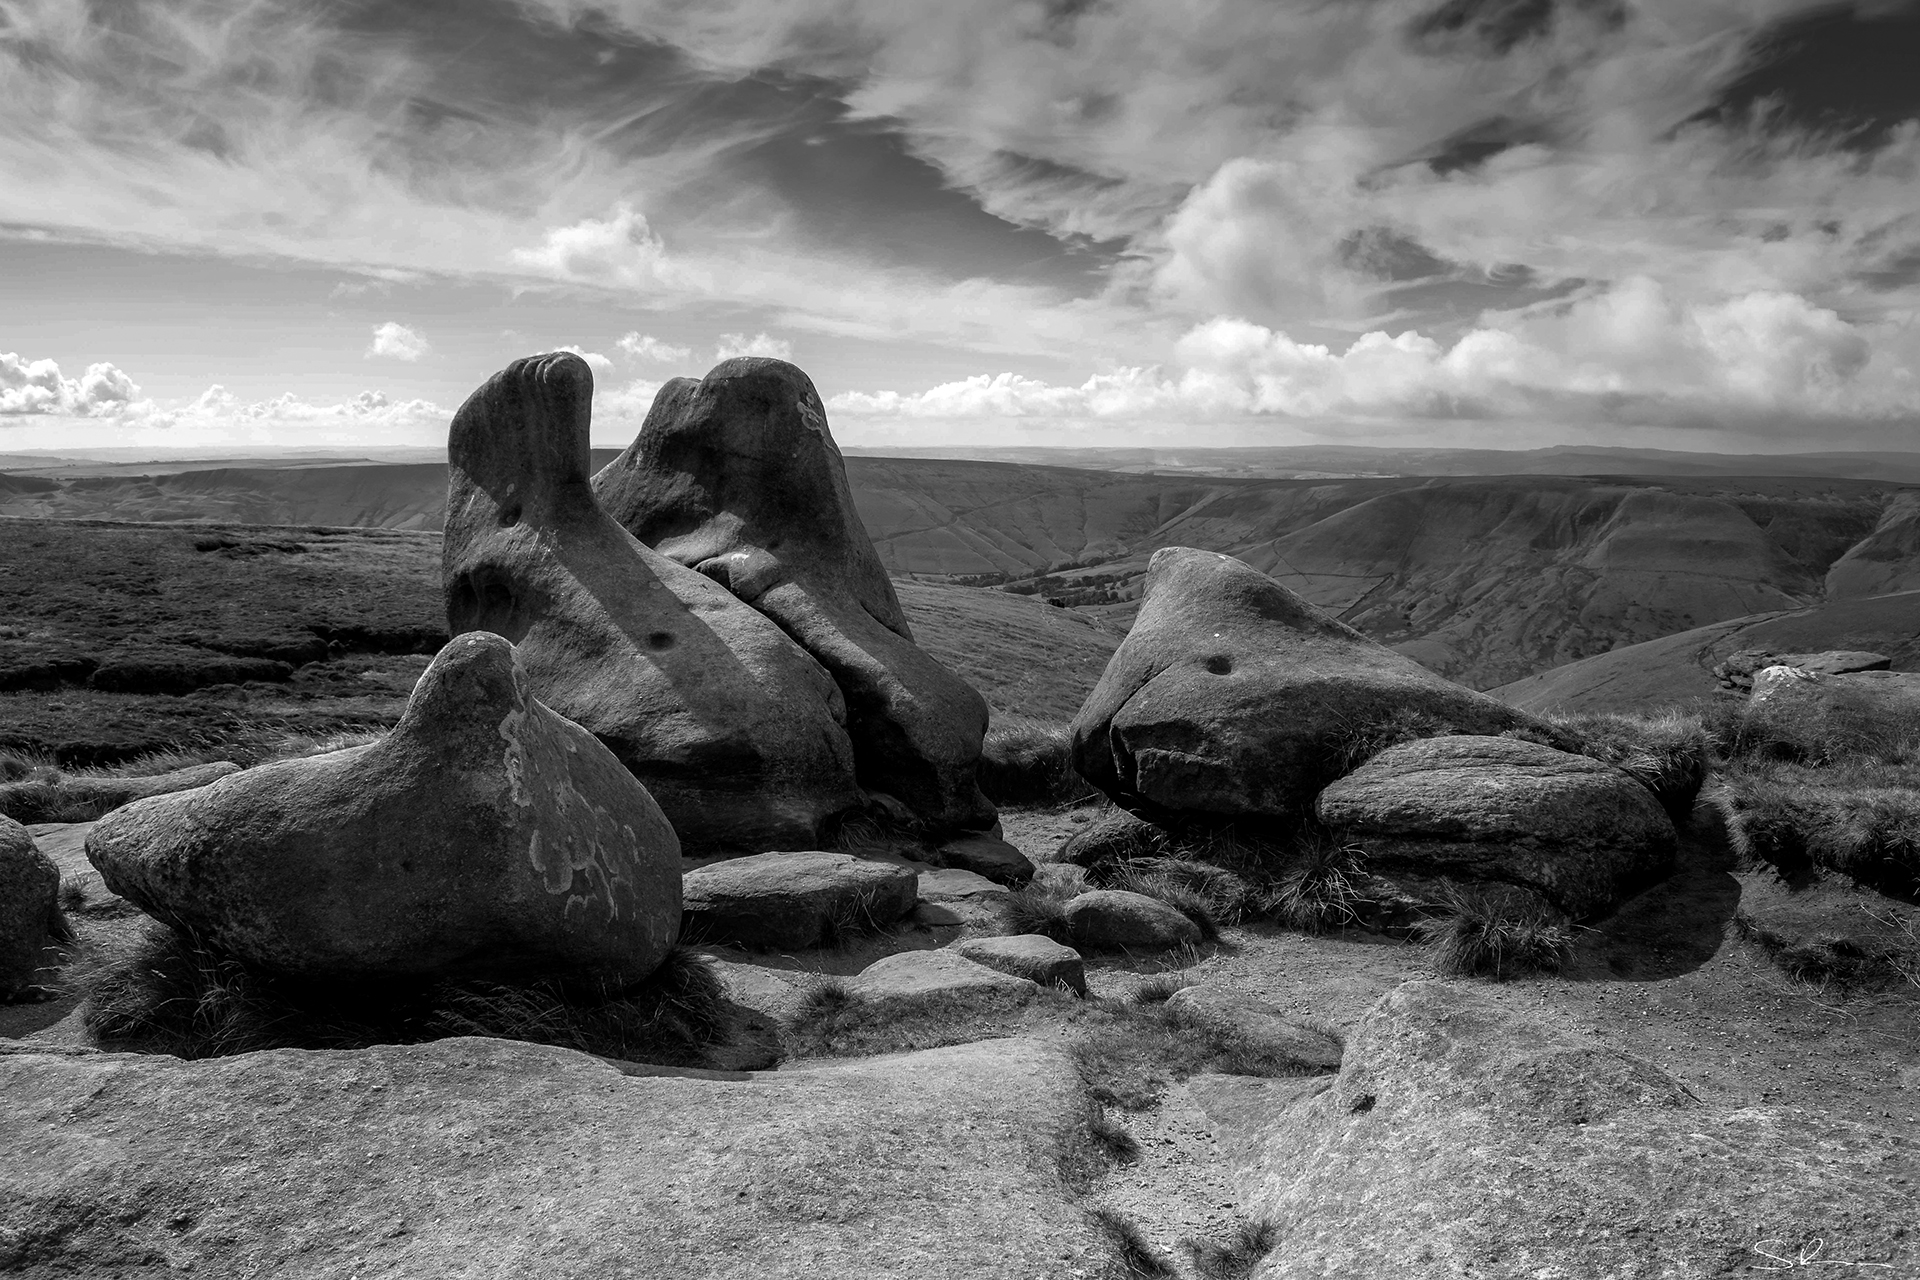 Wild Camp & Photo Shoot on Kinder Scout